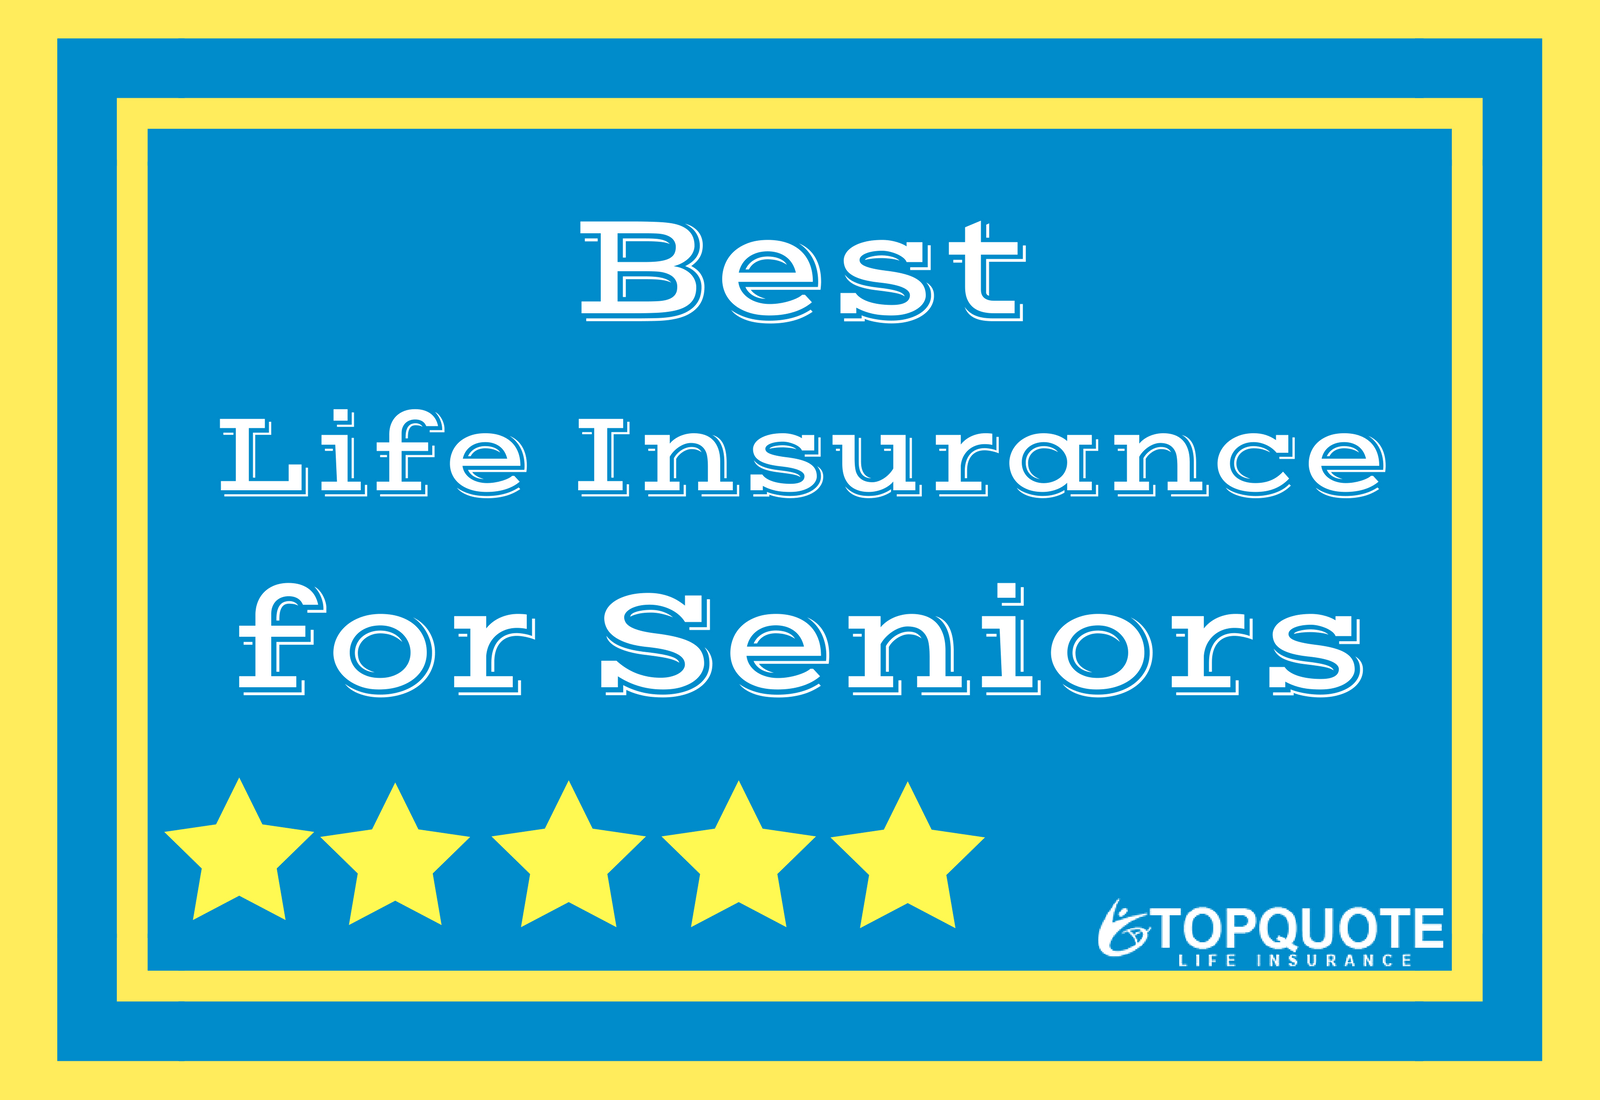 Fidelity Life Insurance Quotes Best Life Insurance For Seniors  Top 10 Senior Life Insurance